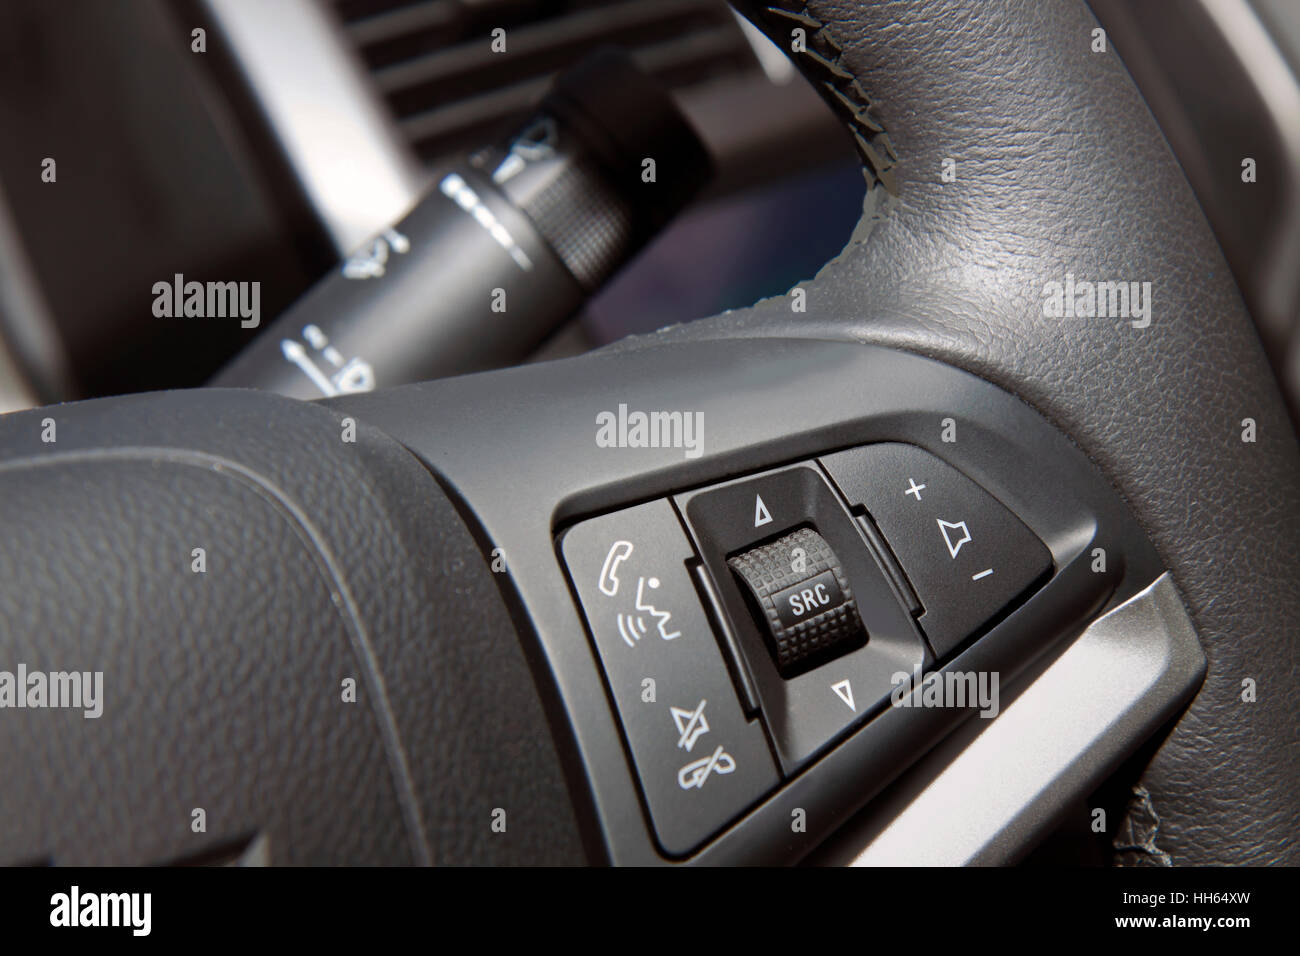 steering wheel with system of safety speakerphone Stock Photo